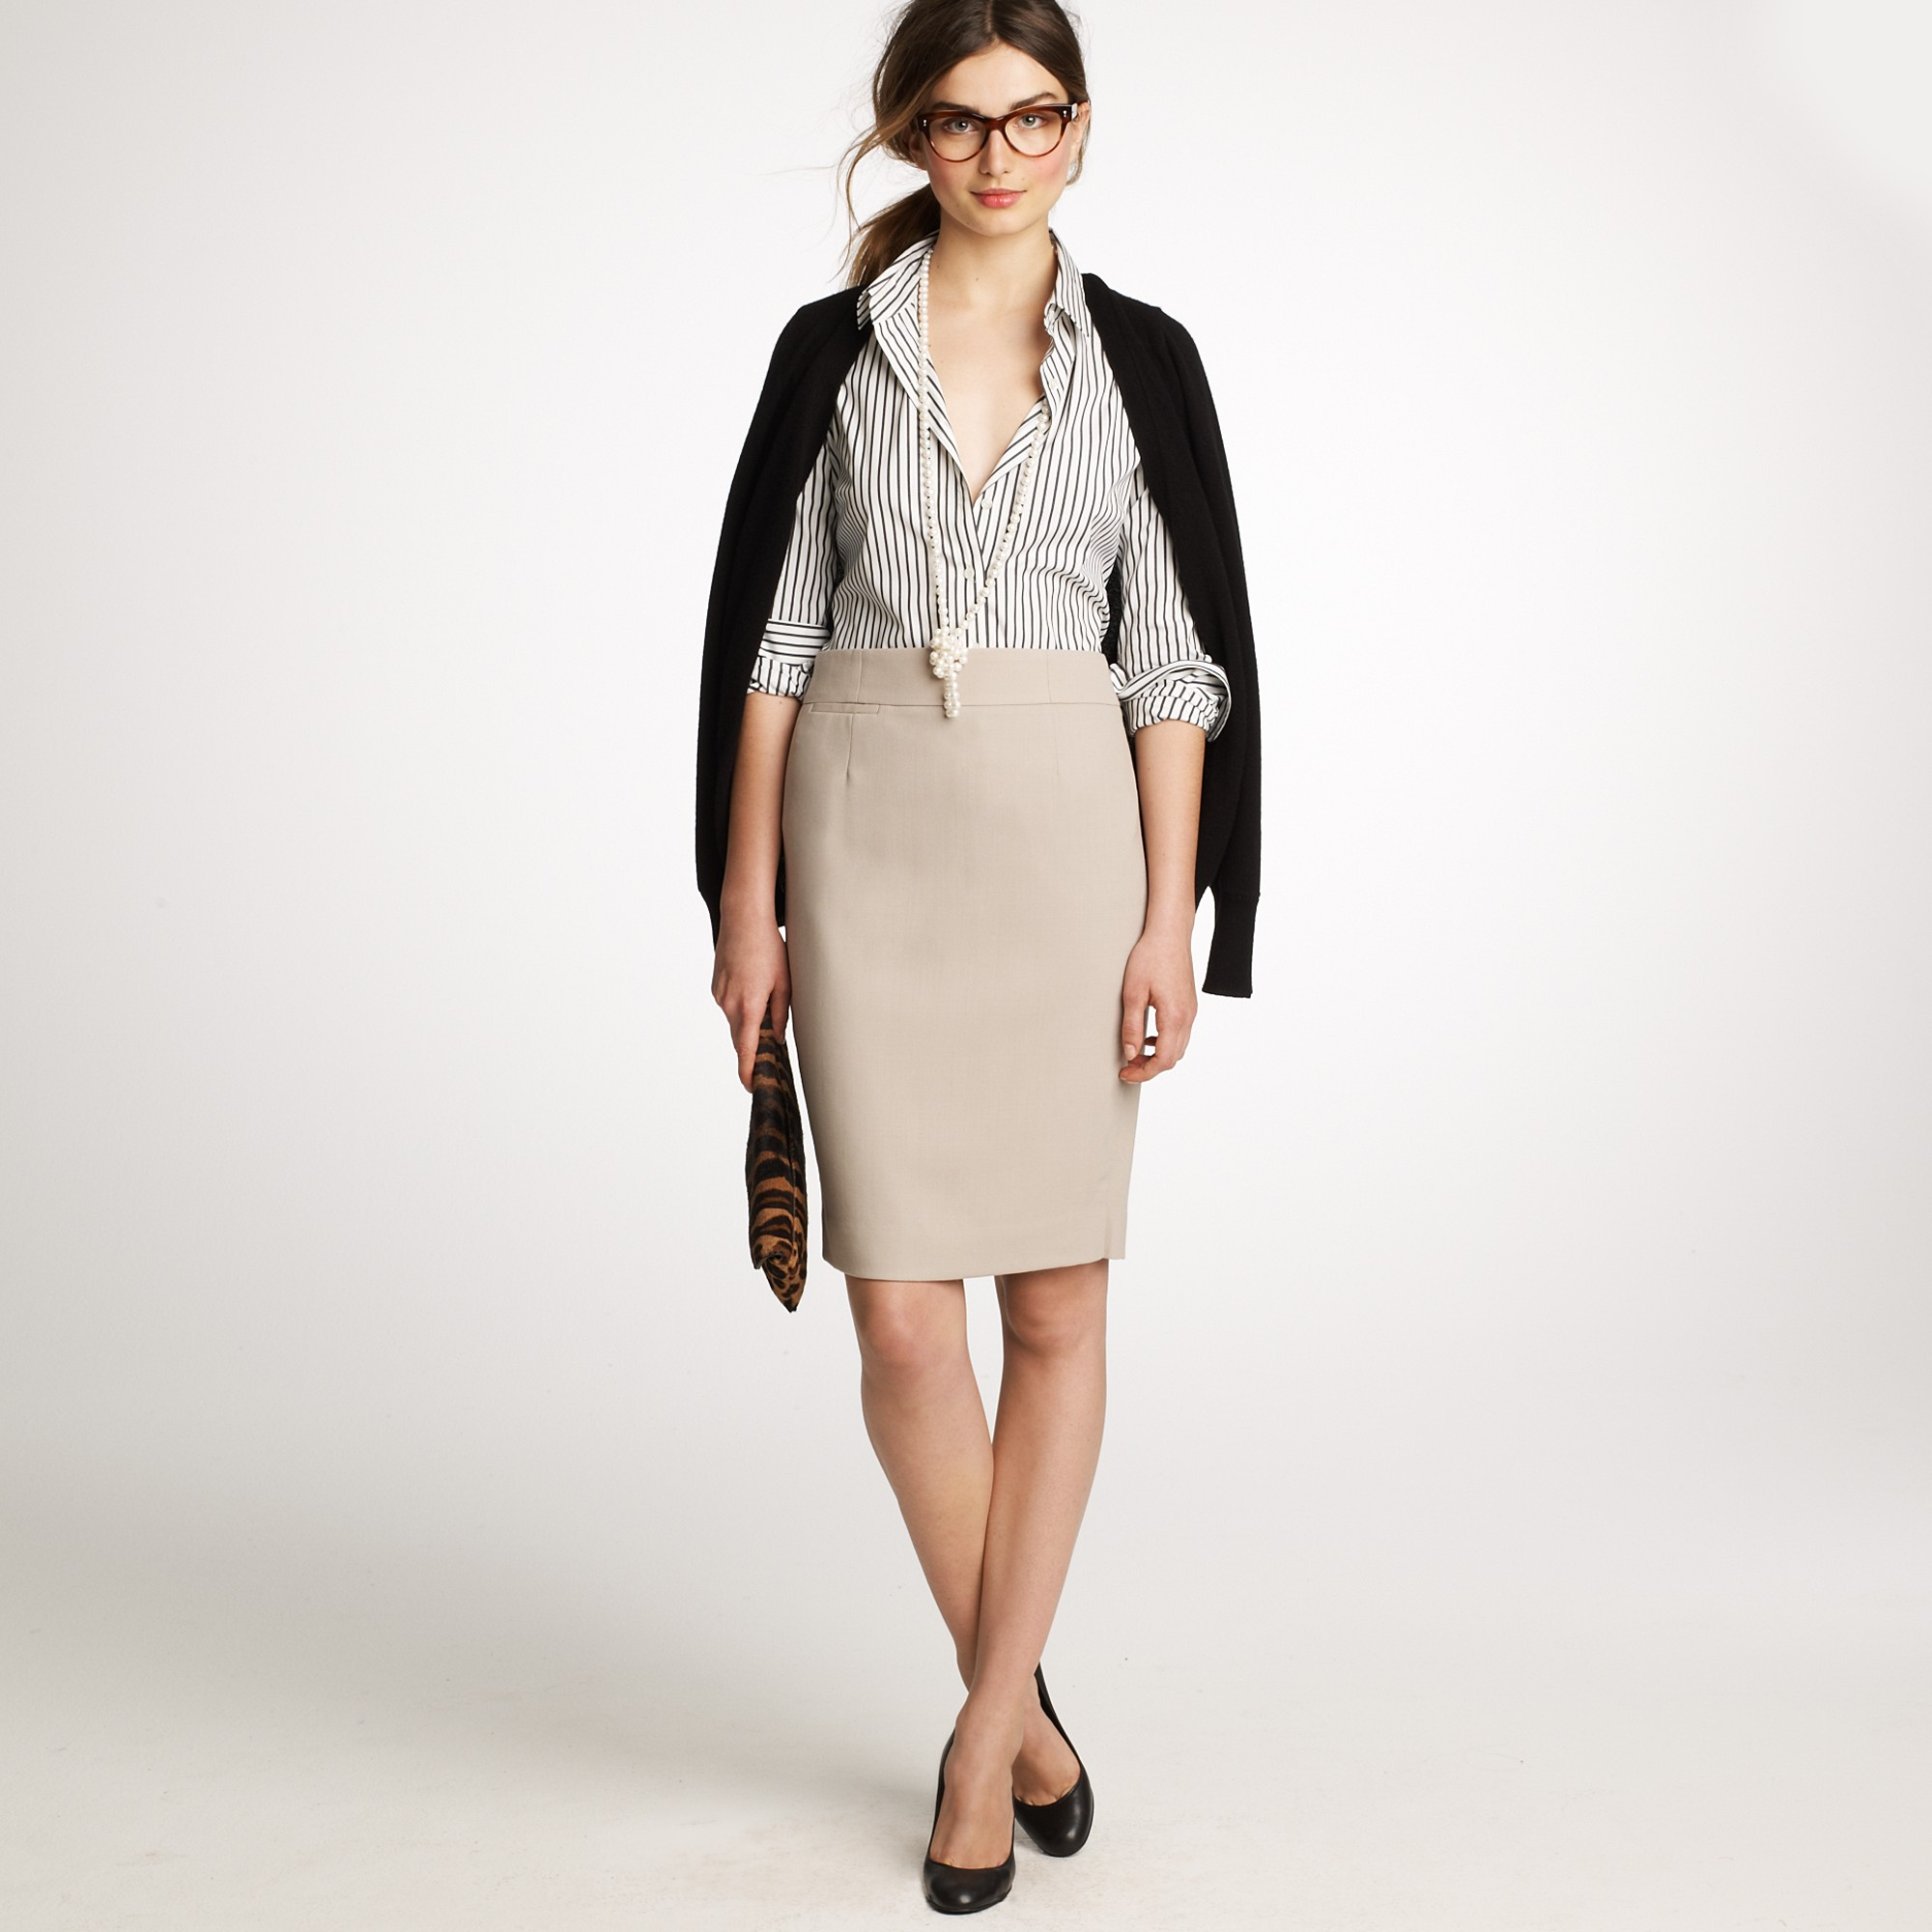 1a2163921f18 J.Crew Pencil Skirt in Wool Crepe in Natural - Lyst